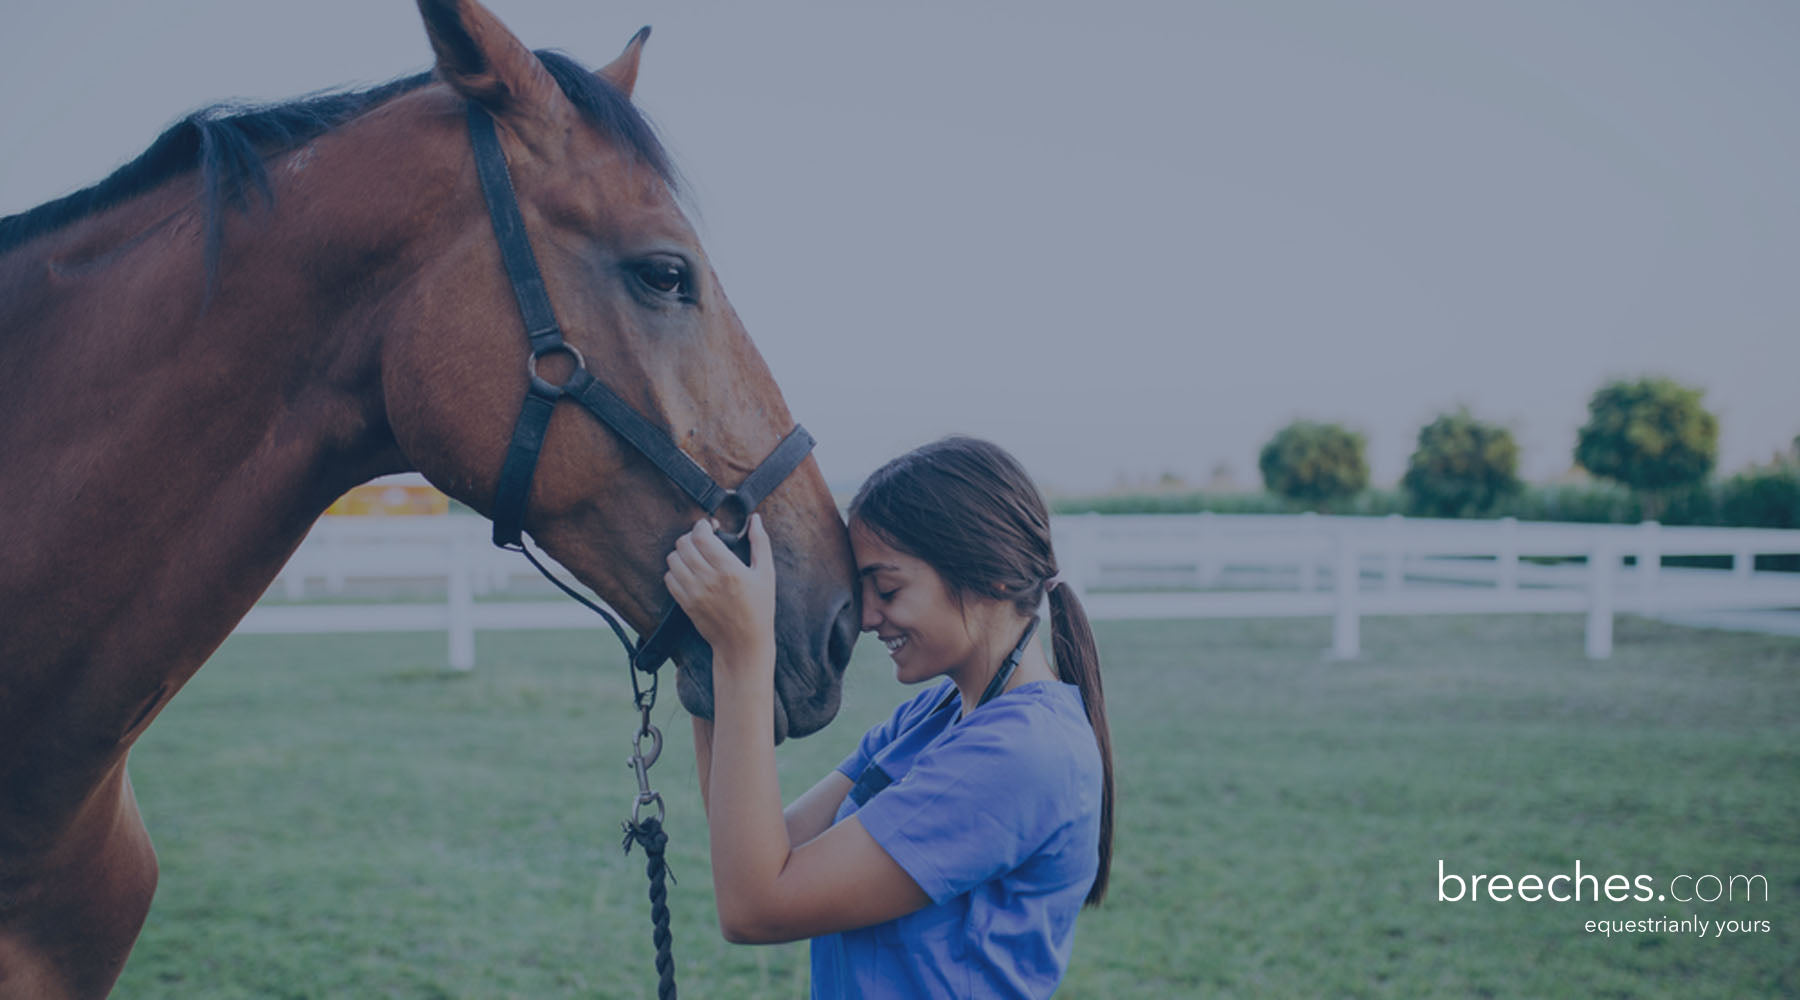 How riders can protect themselves from COVID-19 and support horse immune system